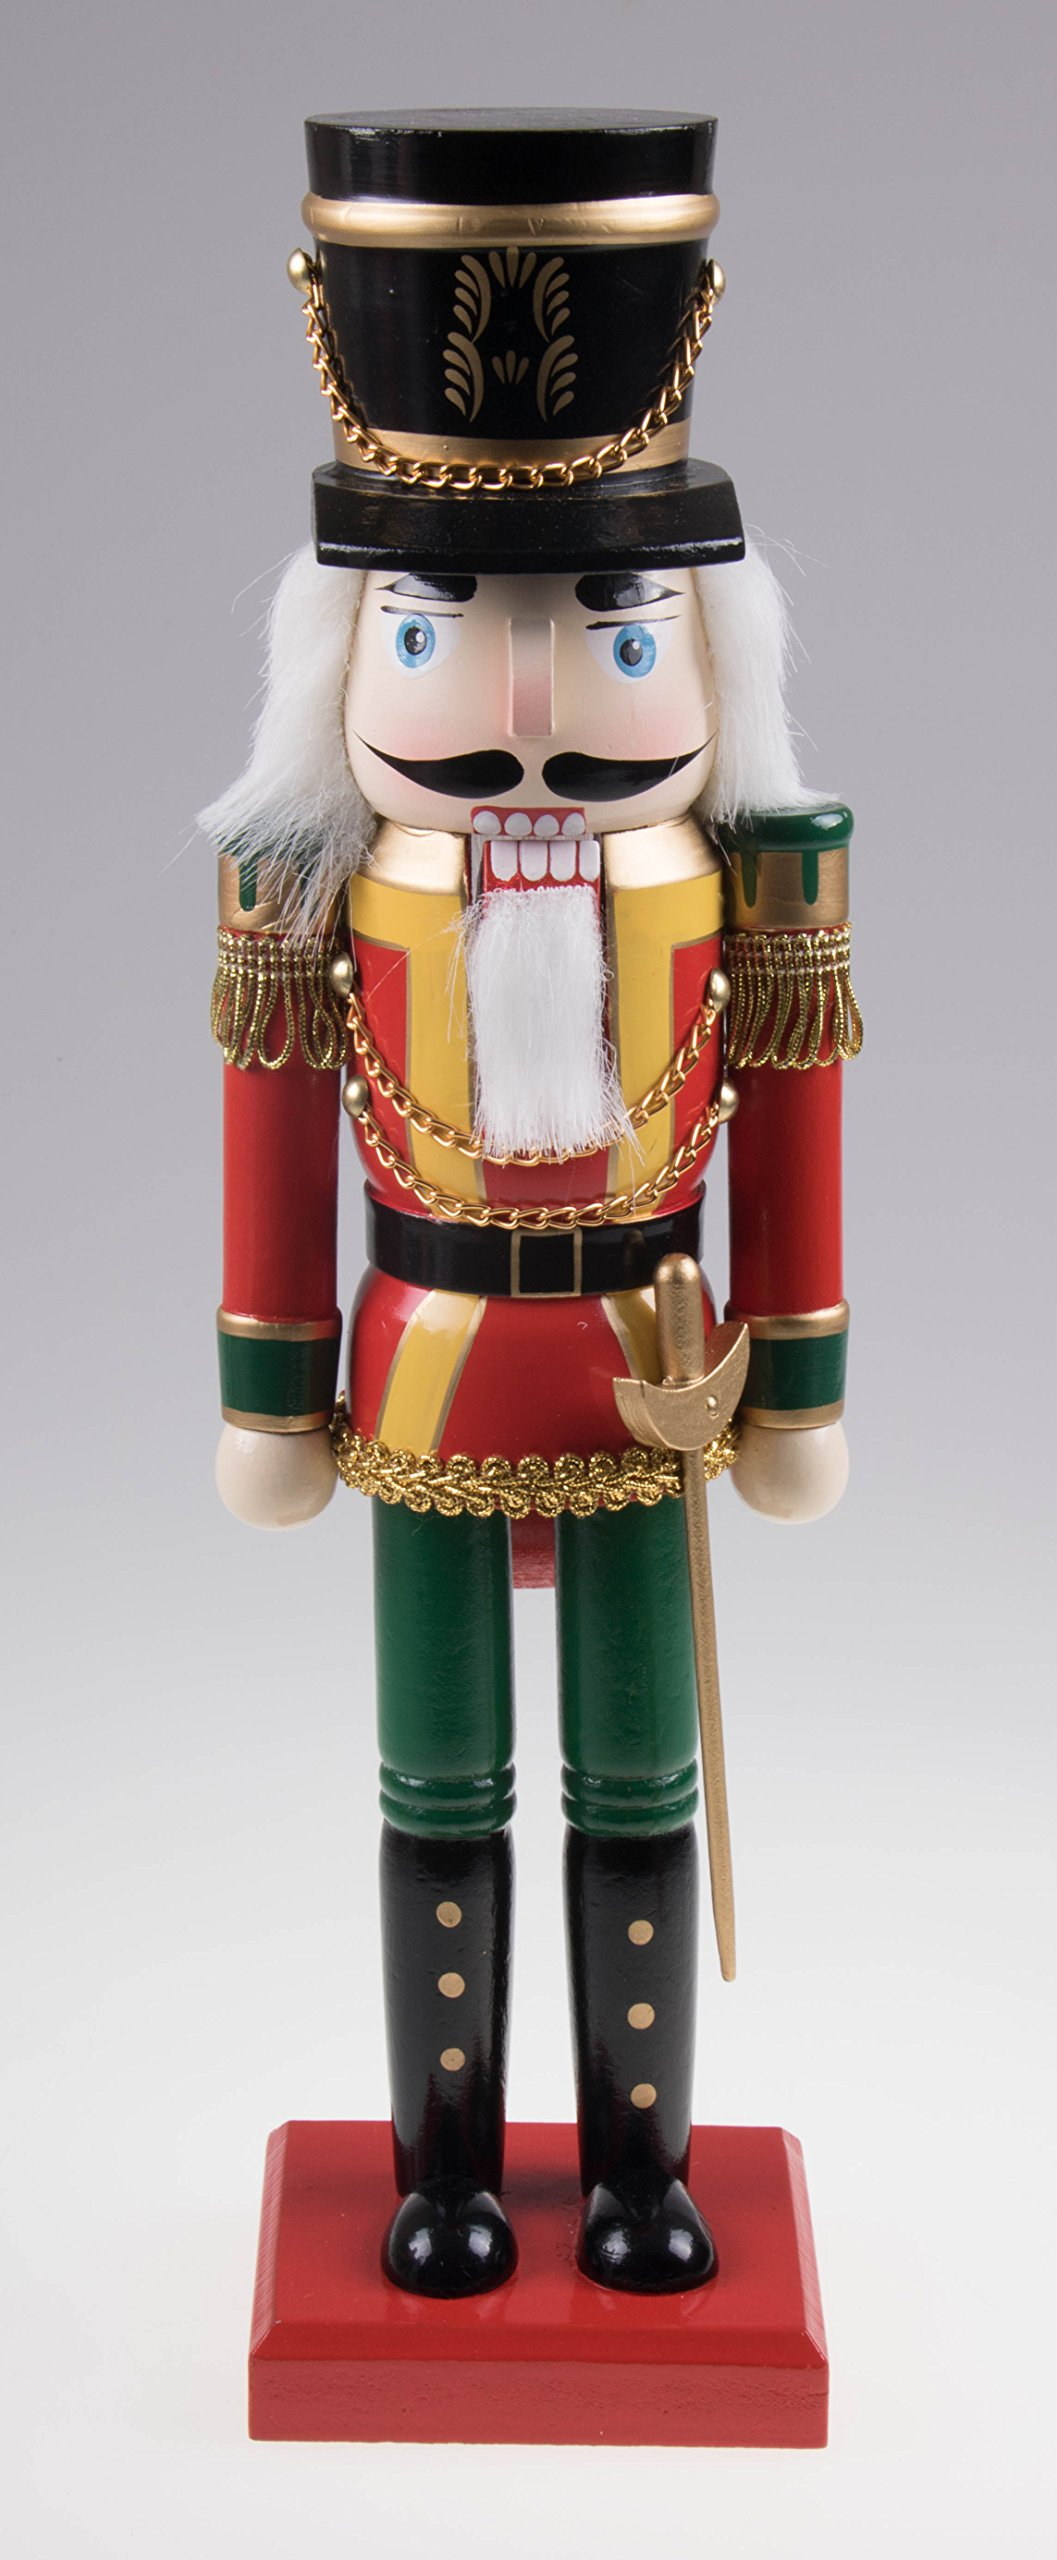 Traditional Wooden Soldier Nutcracker with Sword| Red and Green | Festive Christmas Decor | Classic Collectible Nutcracker | Perfect for Any Decor Theme | 14'' Tall Perfect for Shelves and Tables…